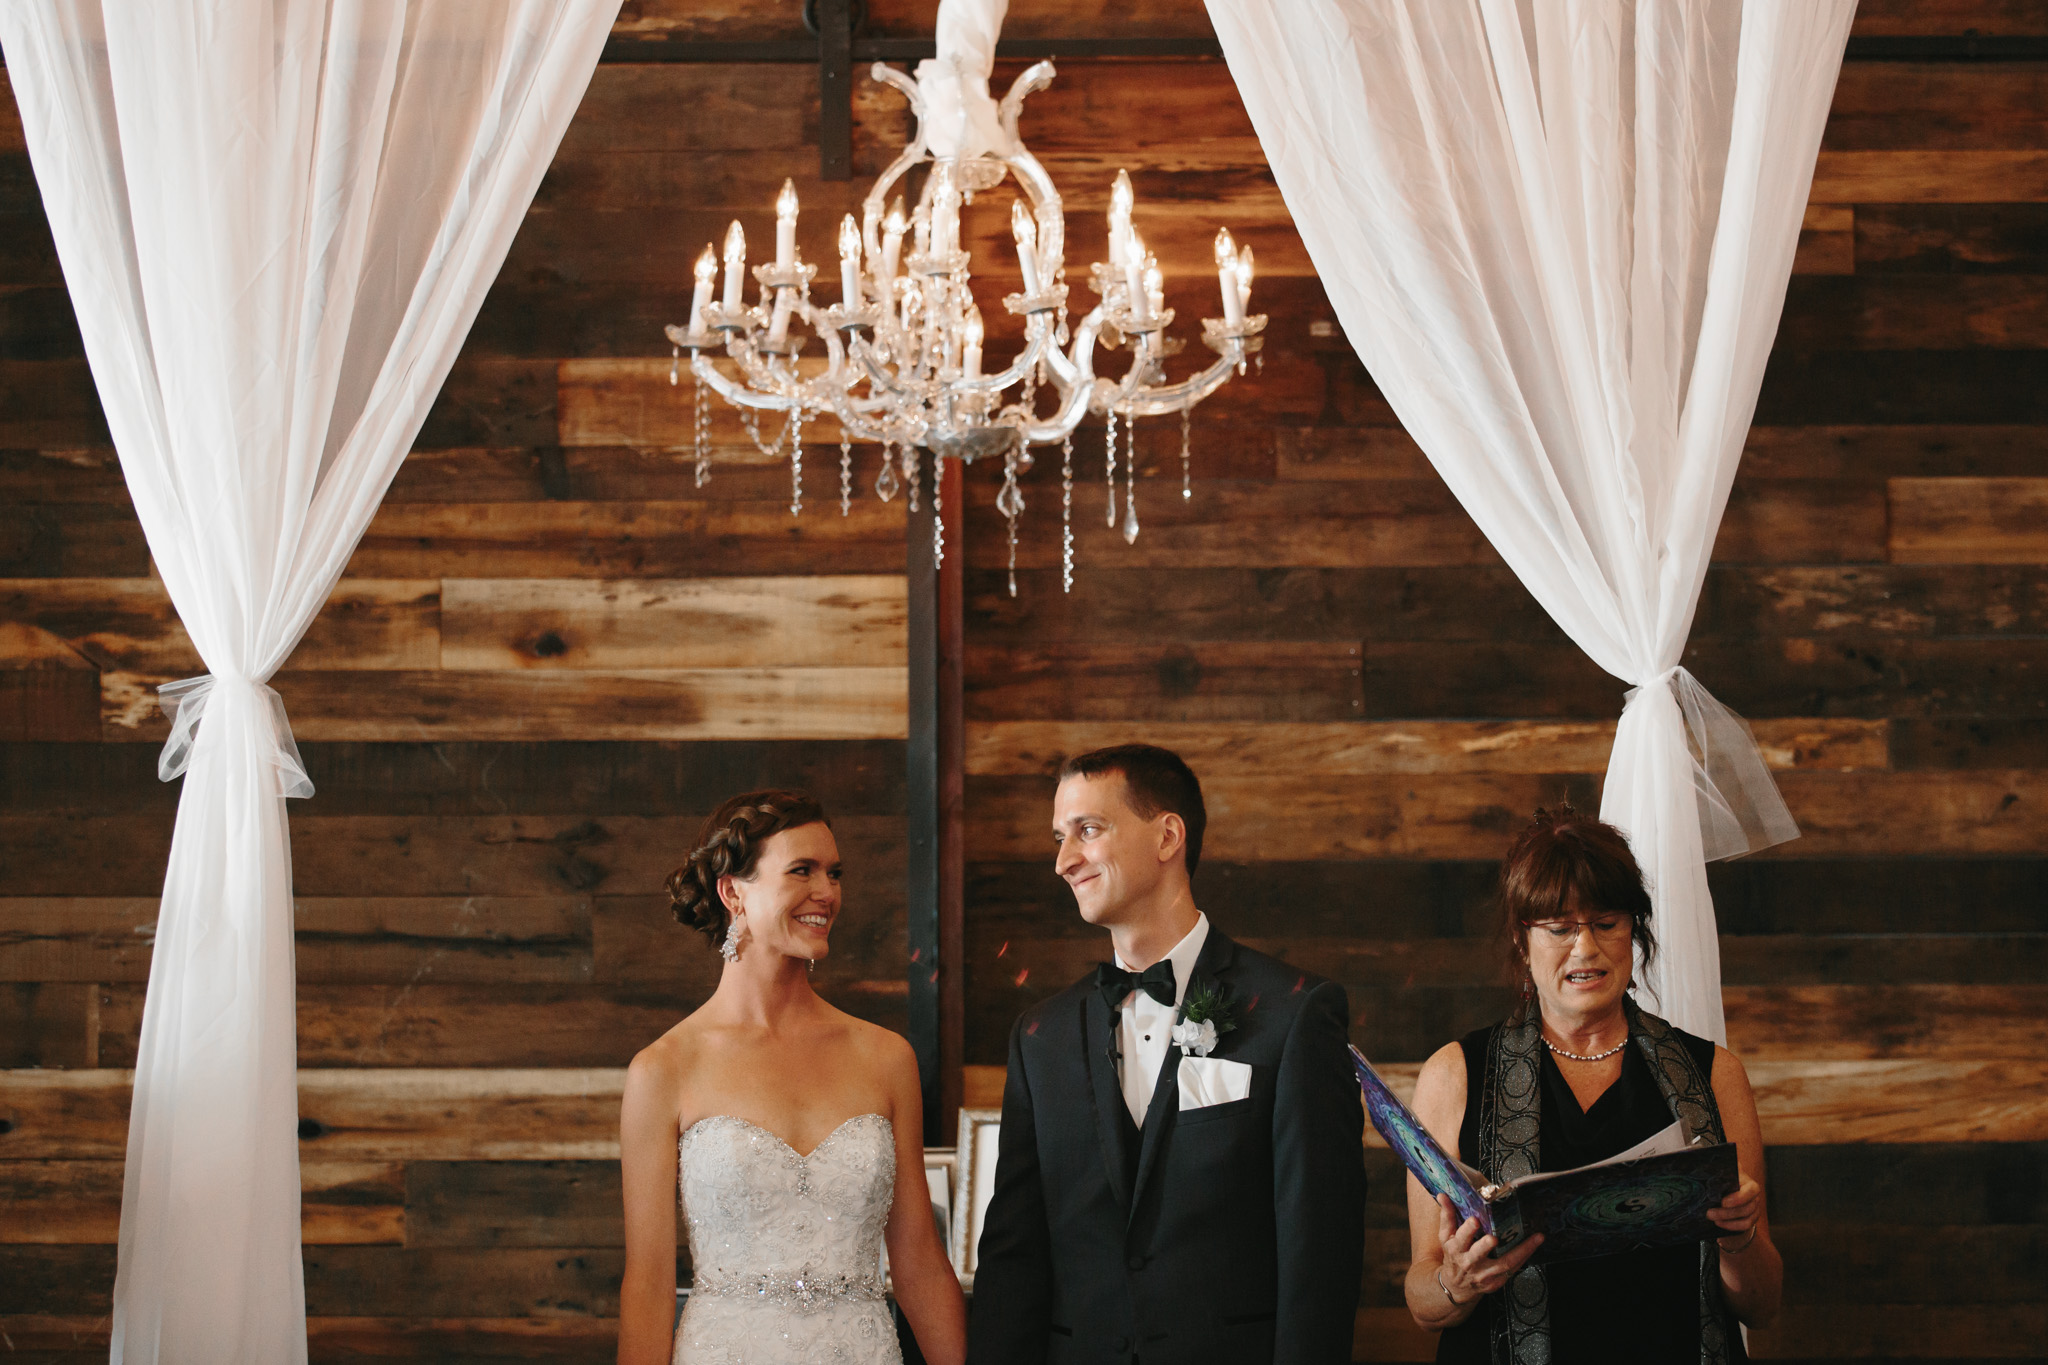 jennichandlerphotography_sheltonwedding-267.jpg